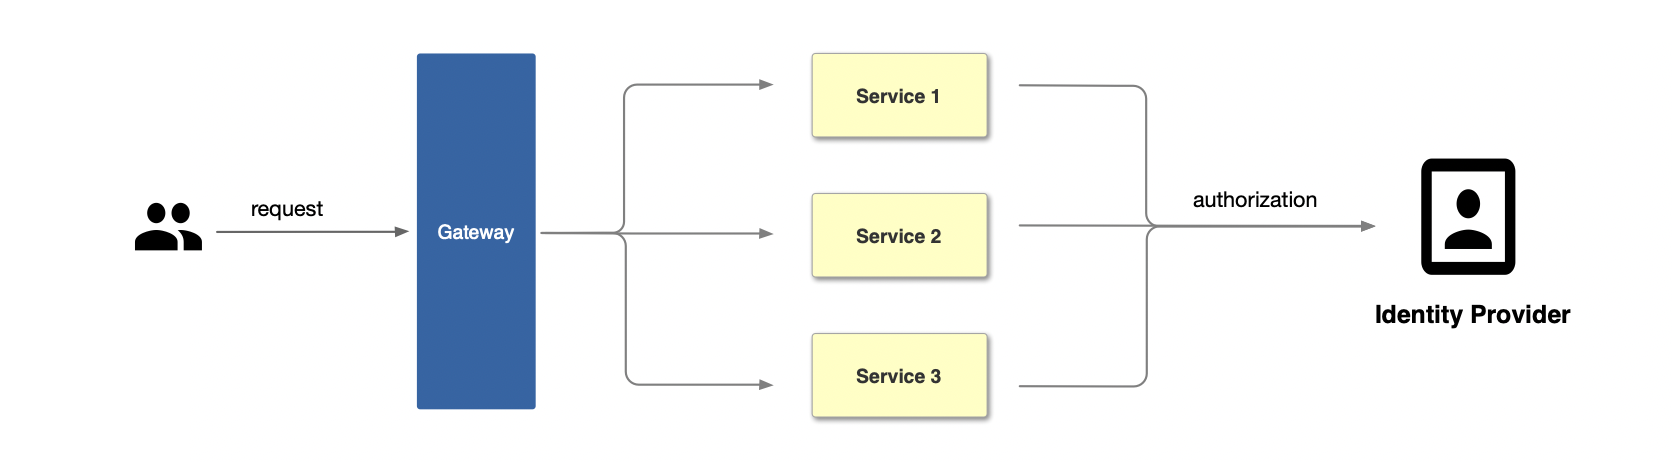 traditional authentication work flow